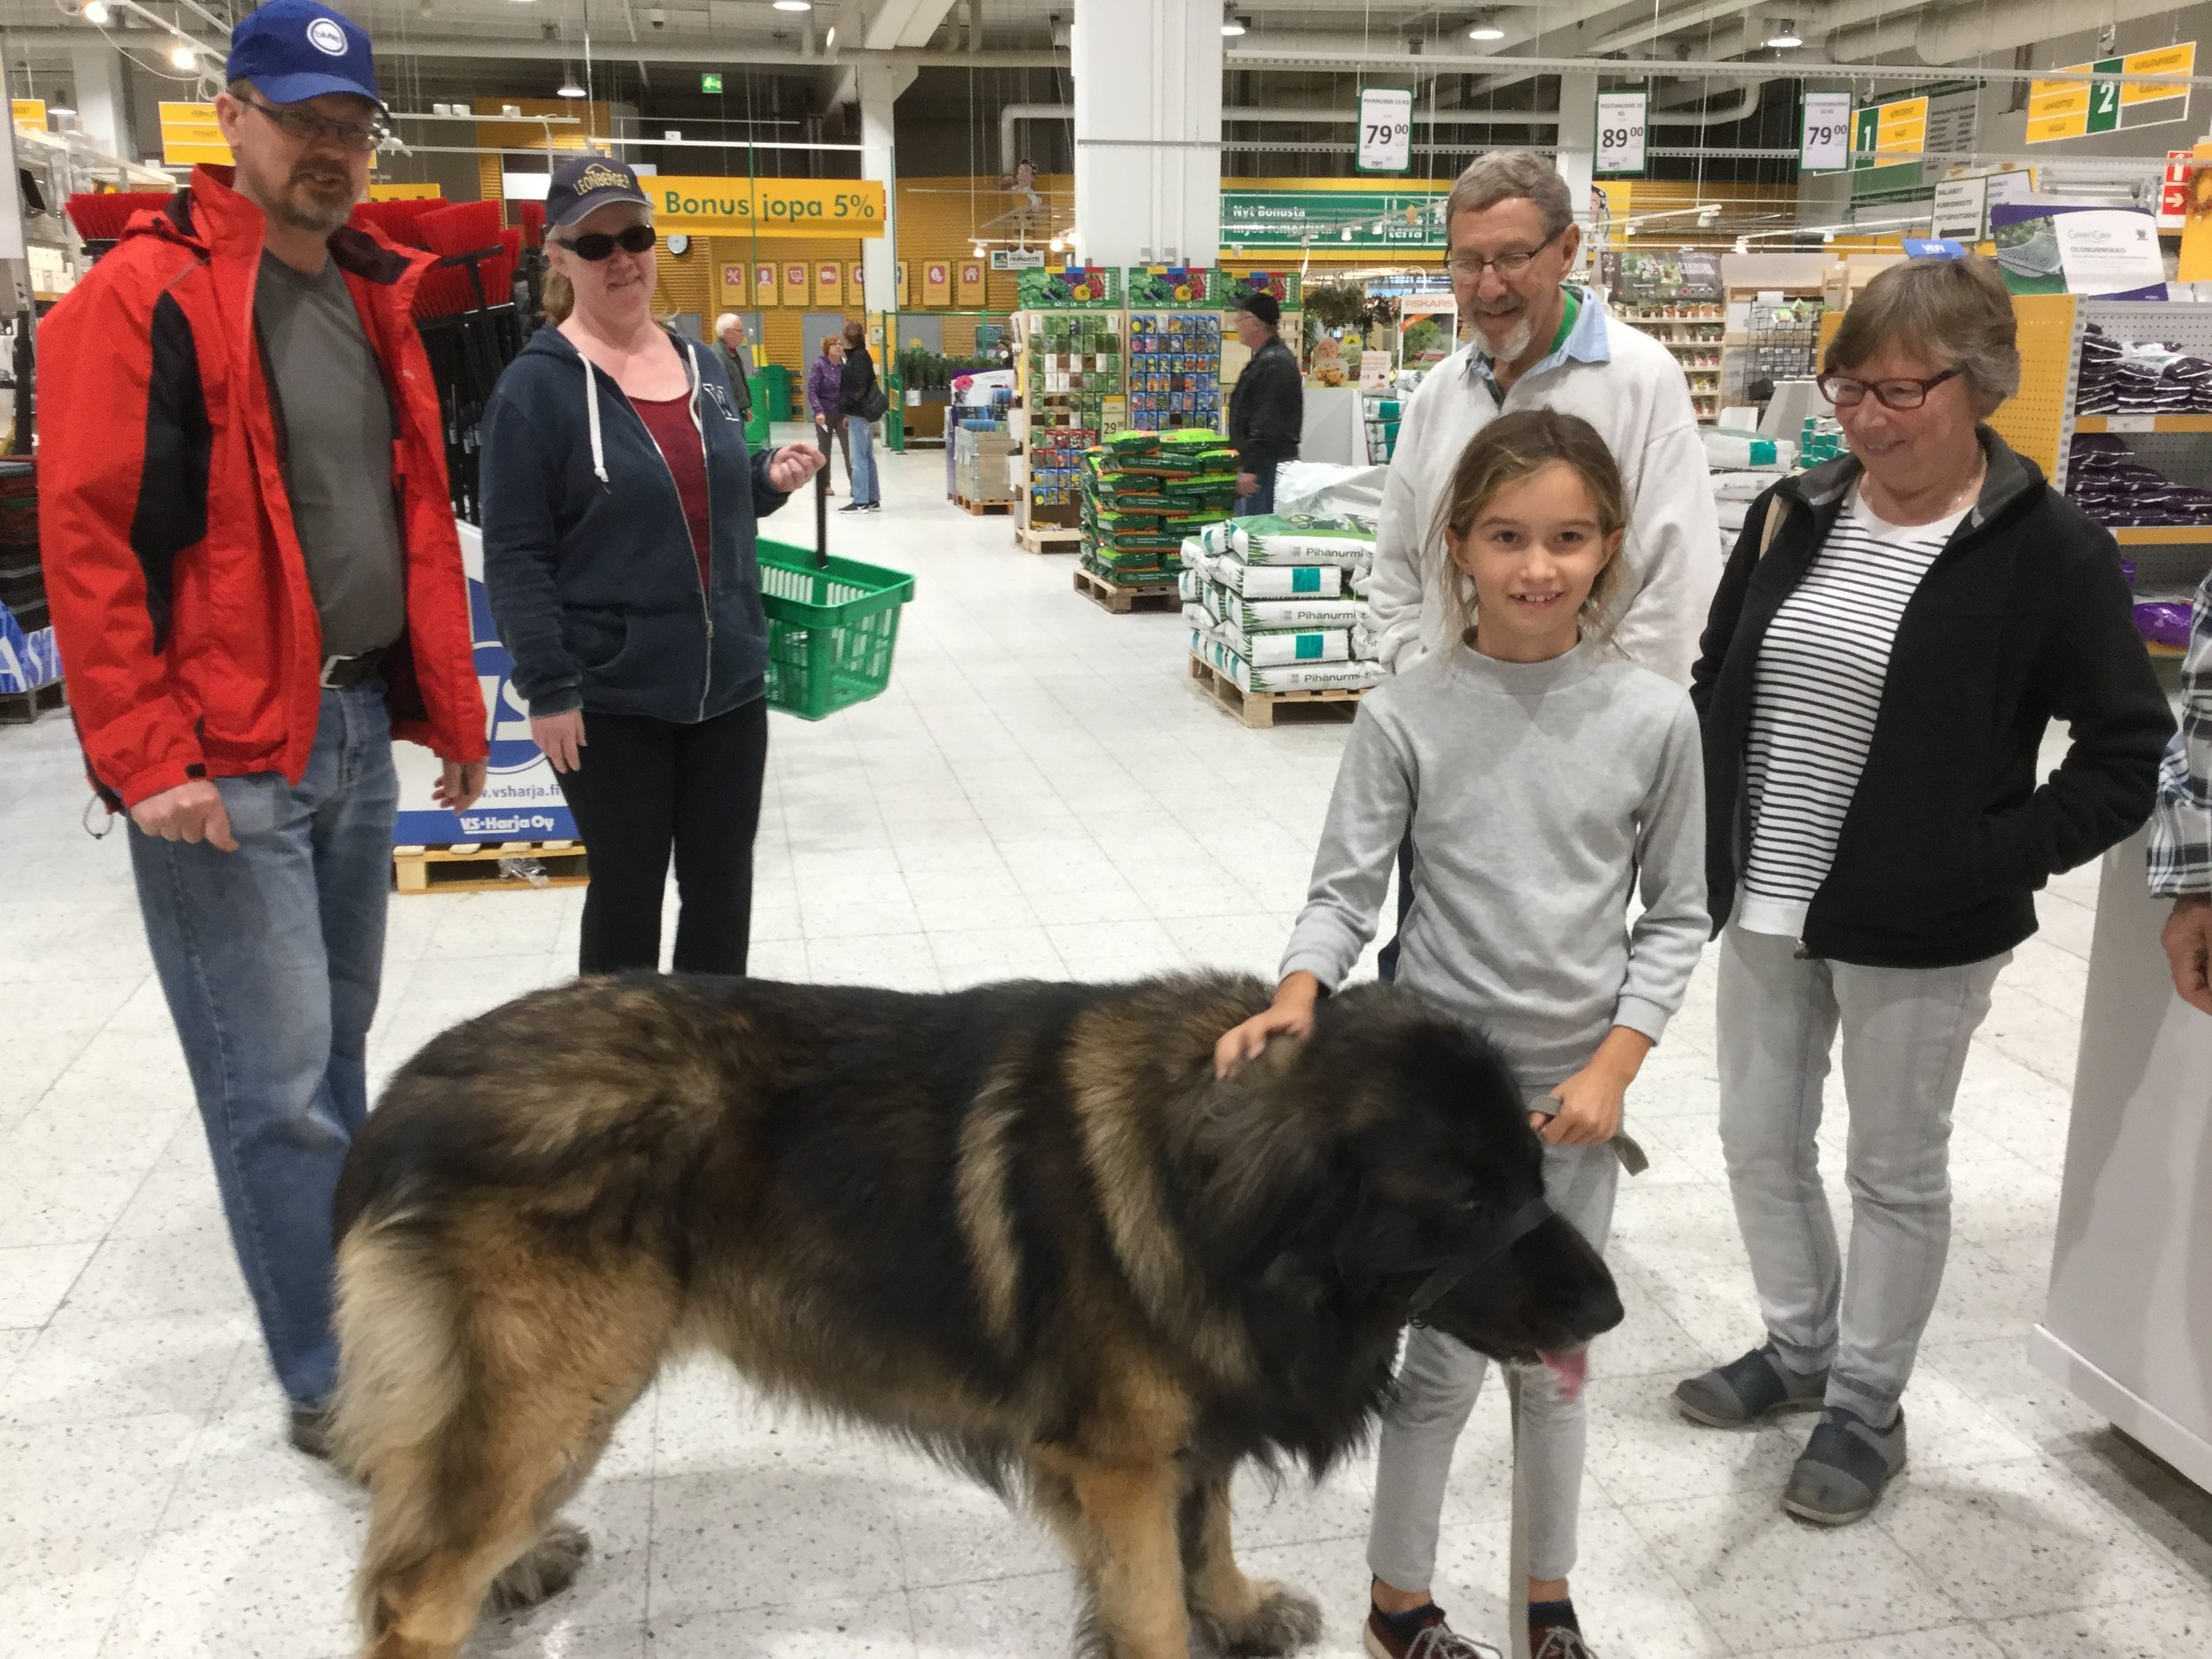 The dog weighs 67 kilos!